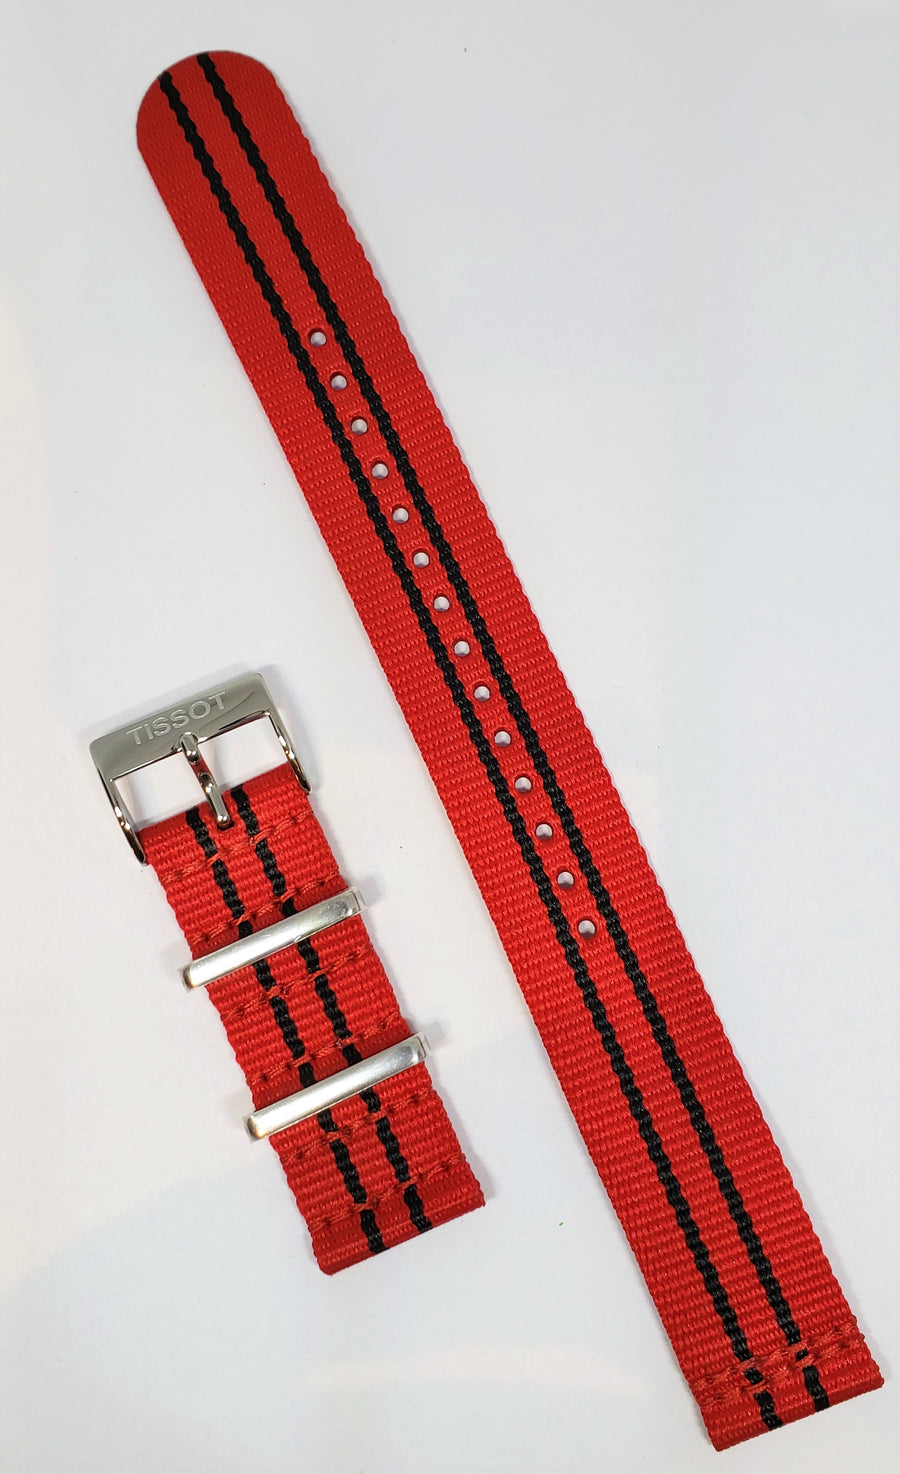 Tissot Quickster Nato T095417A / T095410A Red Black 19mm Band Strap - WATCHBAND EXPERT